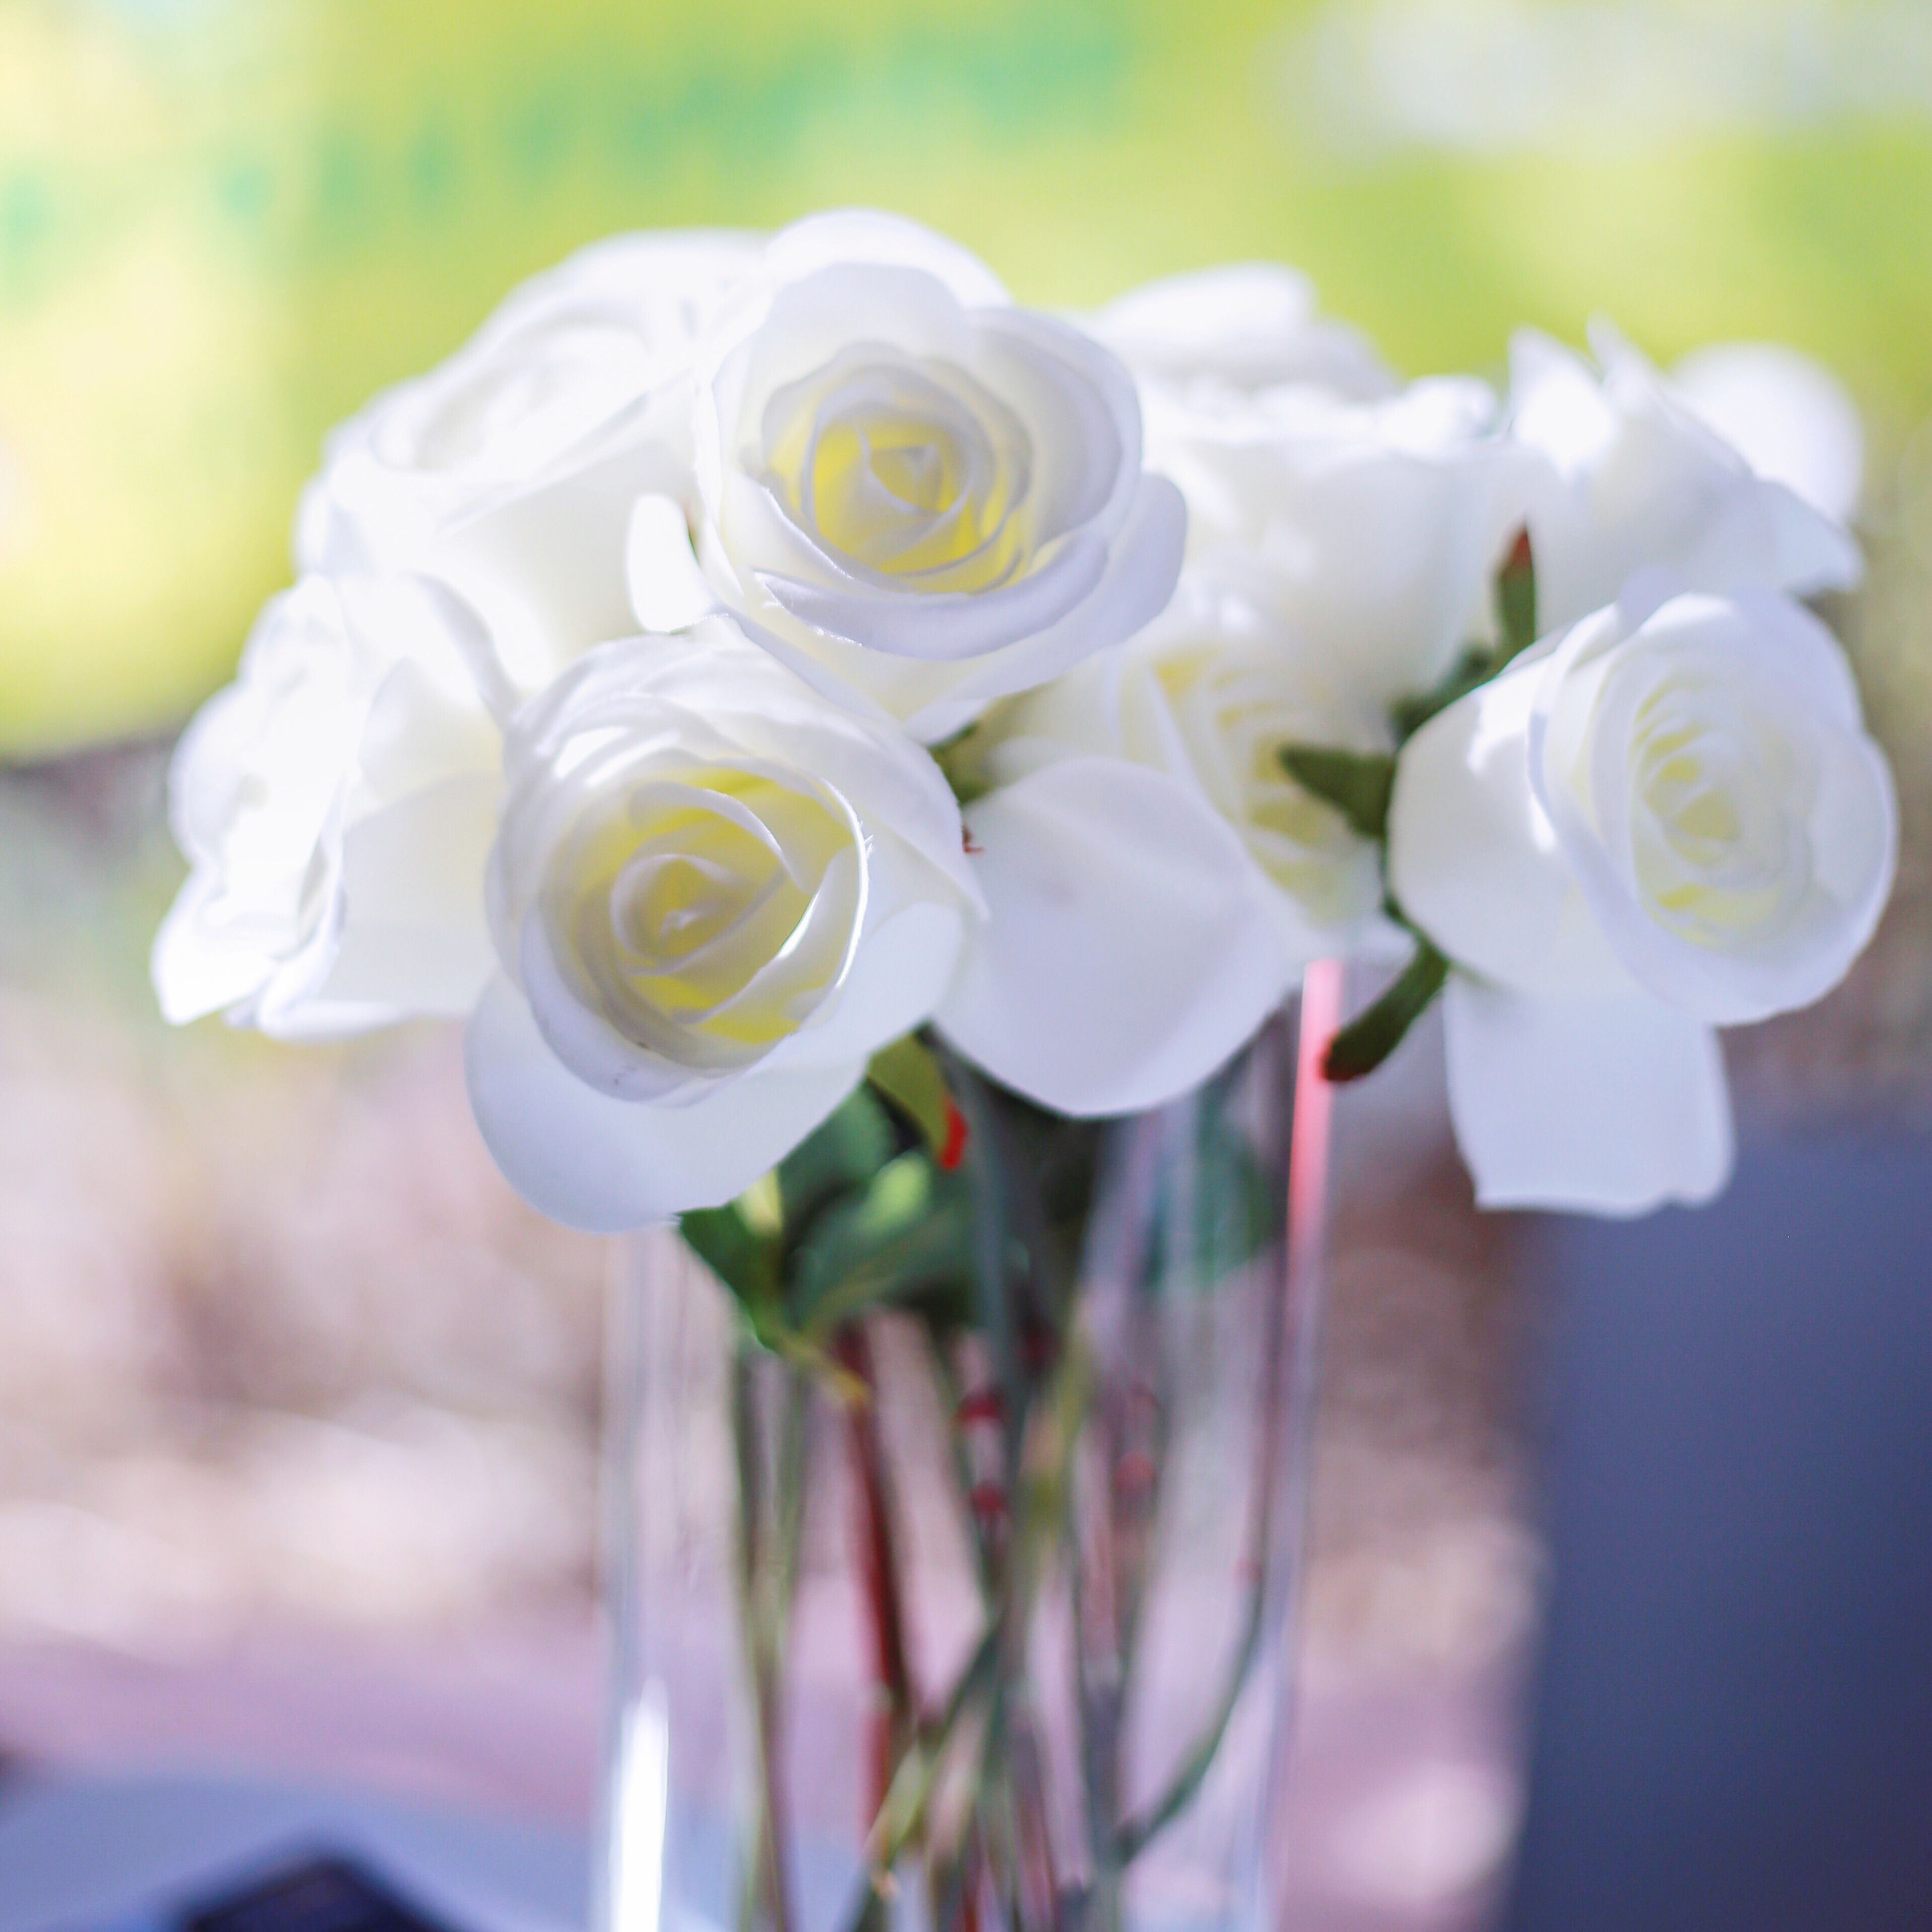 flower, petal, rose - flower, close-up, focus on foreground, fragility, nature, flower head, day, no people, growth, plant, indoors, freshness, beauty in nature, bouquet